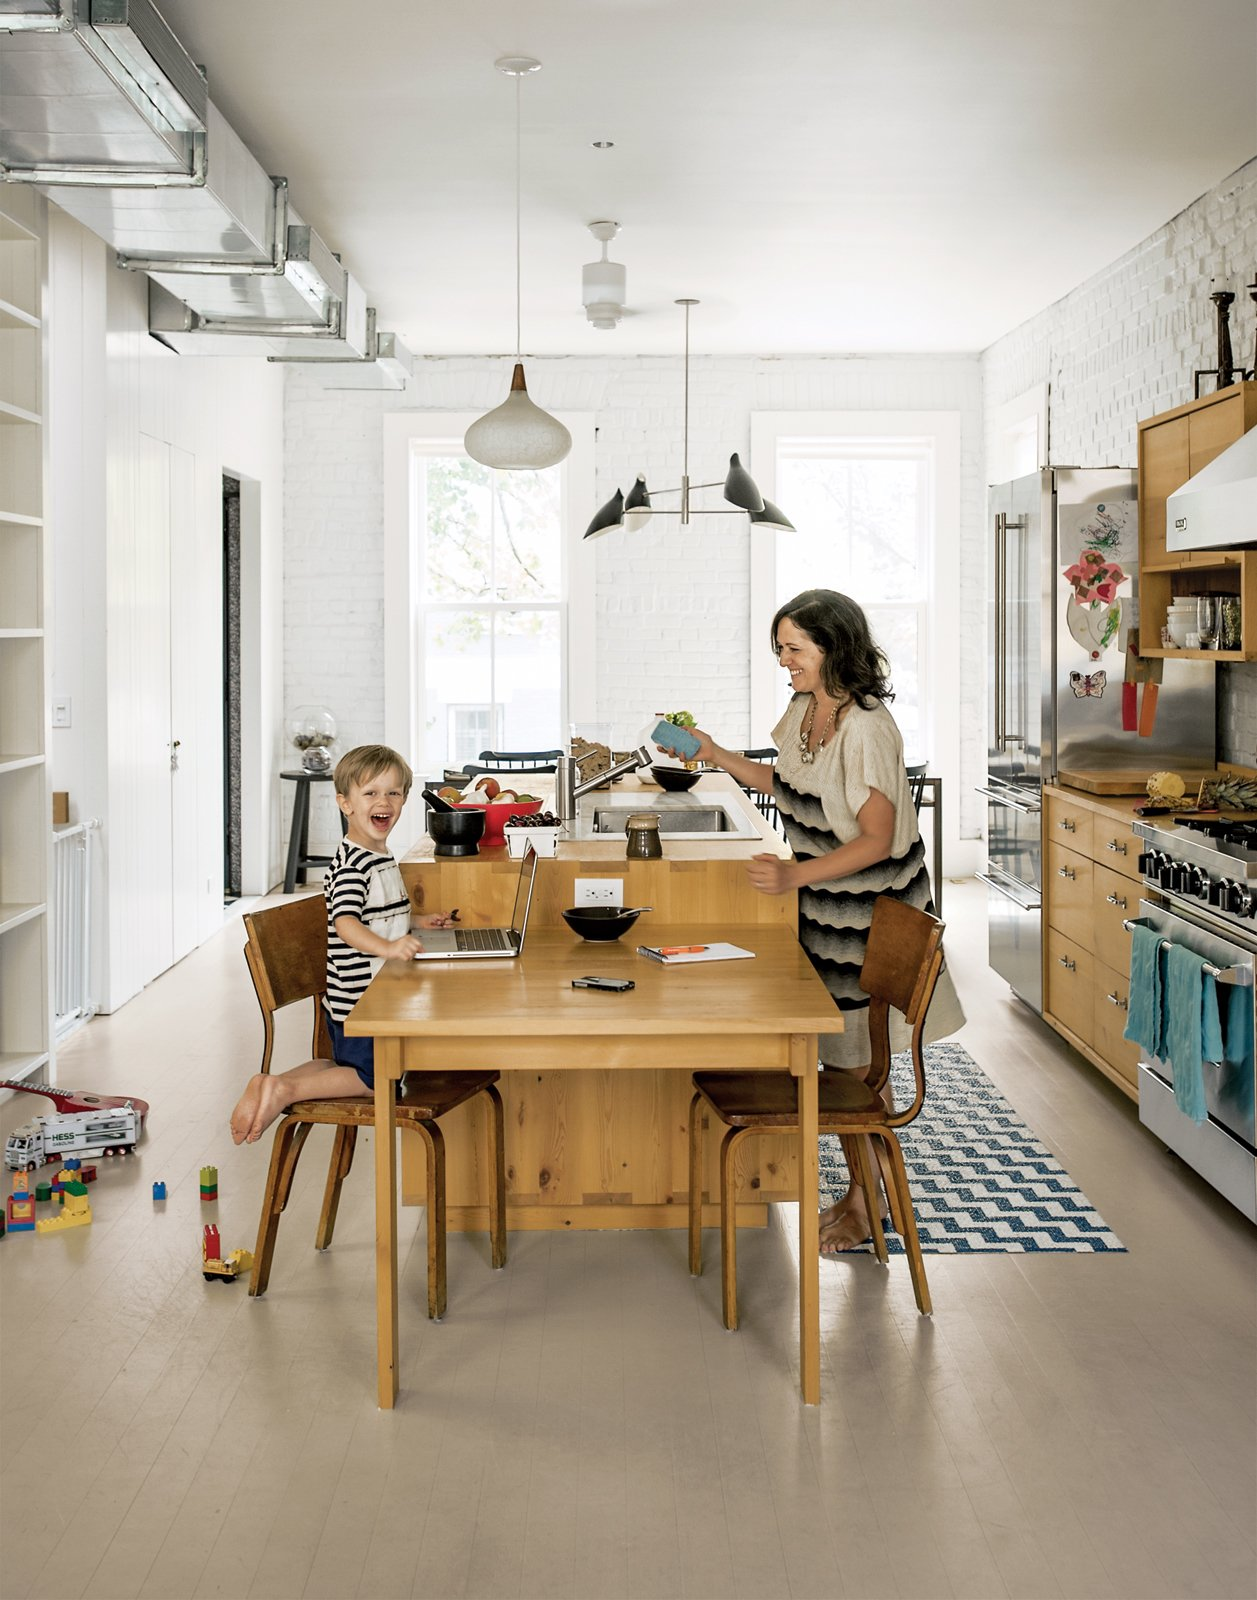 """Kitchen & Dining Room """"This room really became the heart of the space,"""" Dawn Casale says. """"If people are sitting at the dining table or in the living area, you're able to have a really free-flowing conversation and there's a nice dynamic happening on the entire floor."""""""